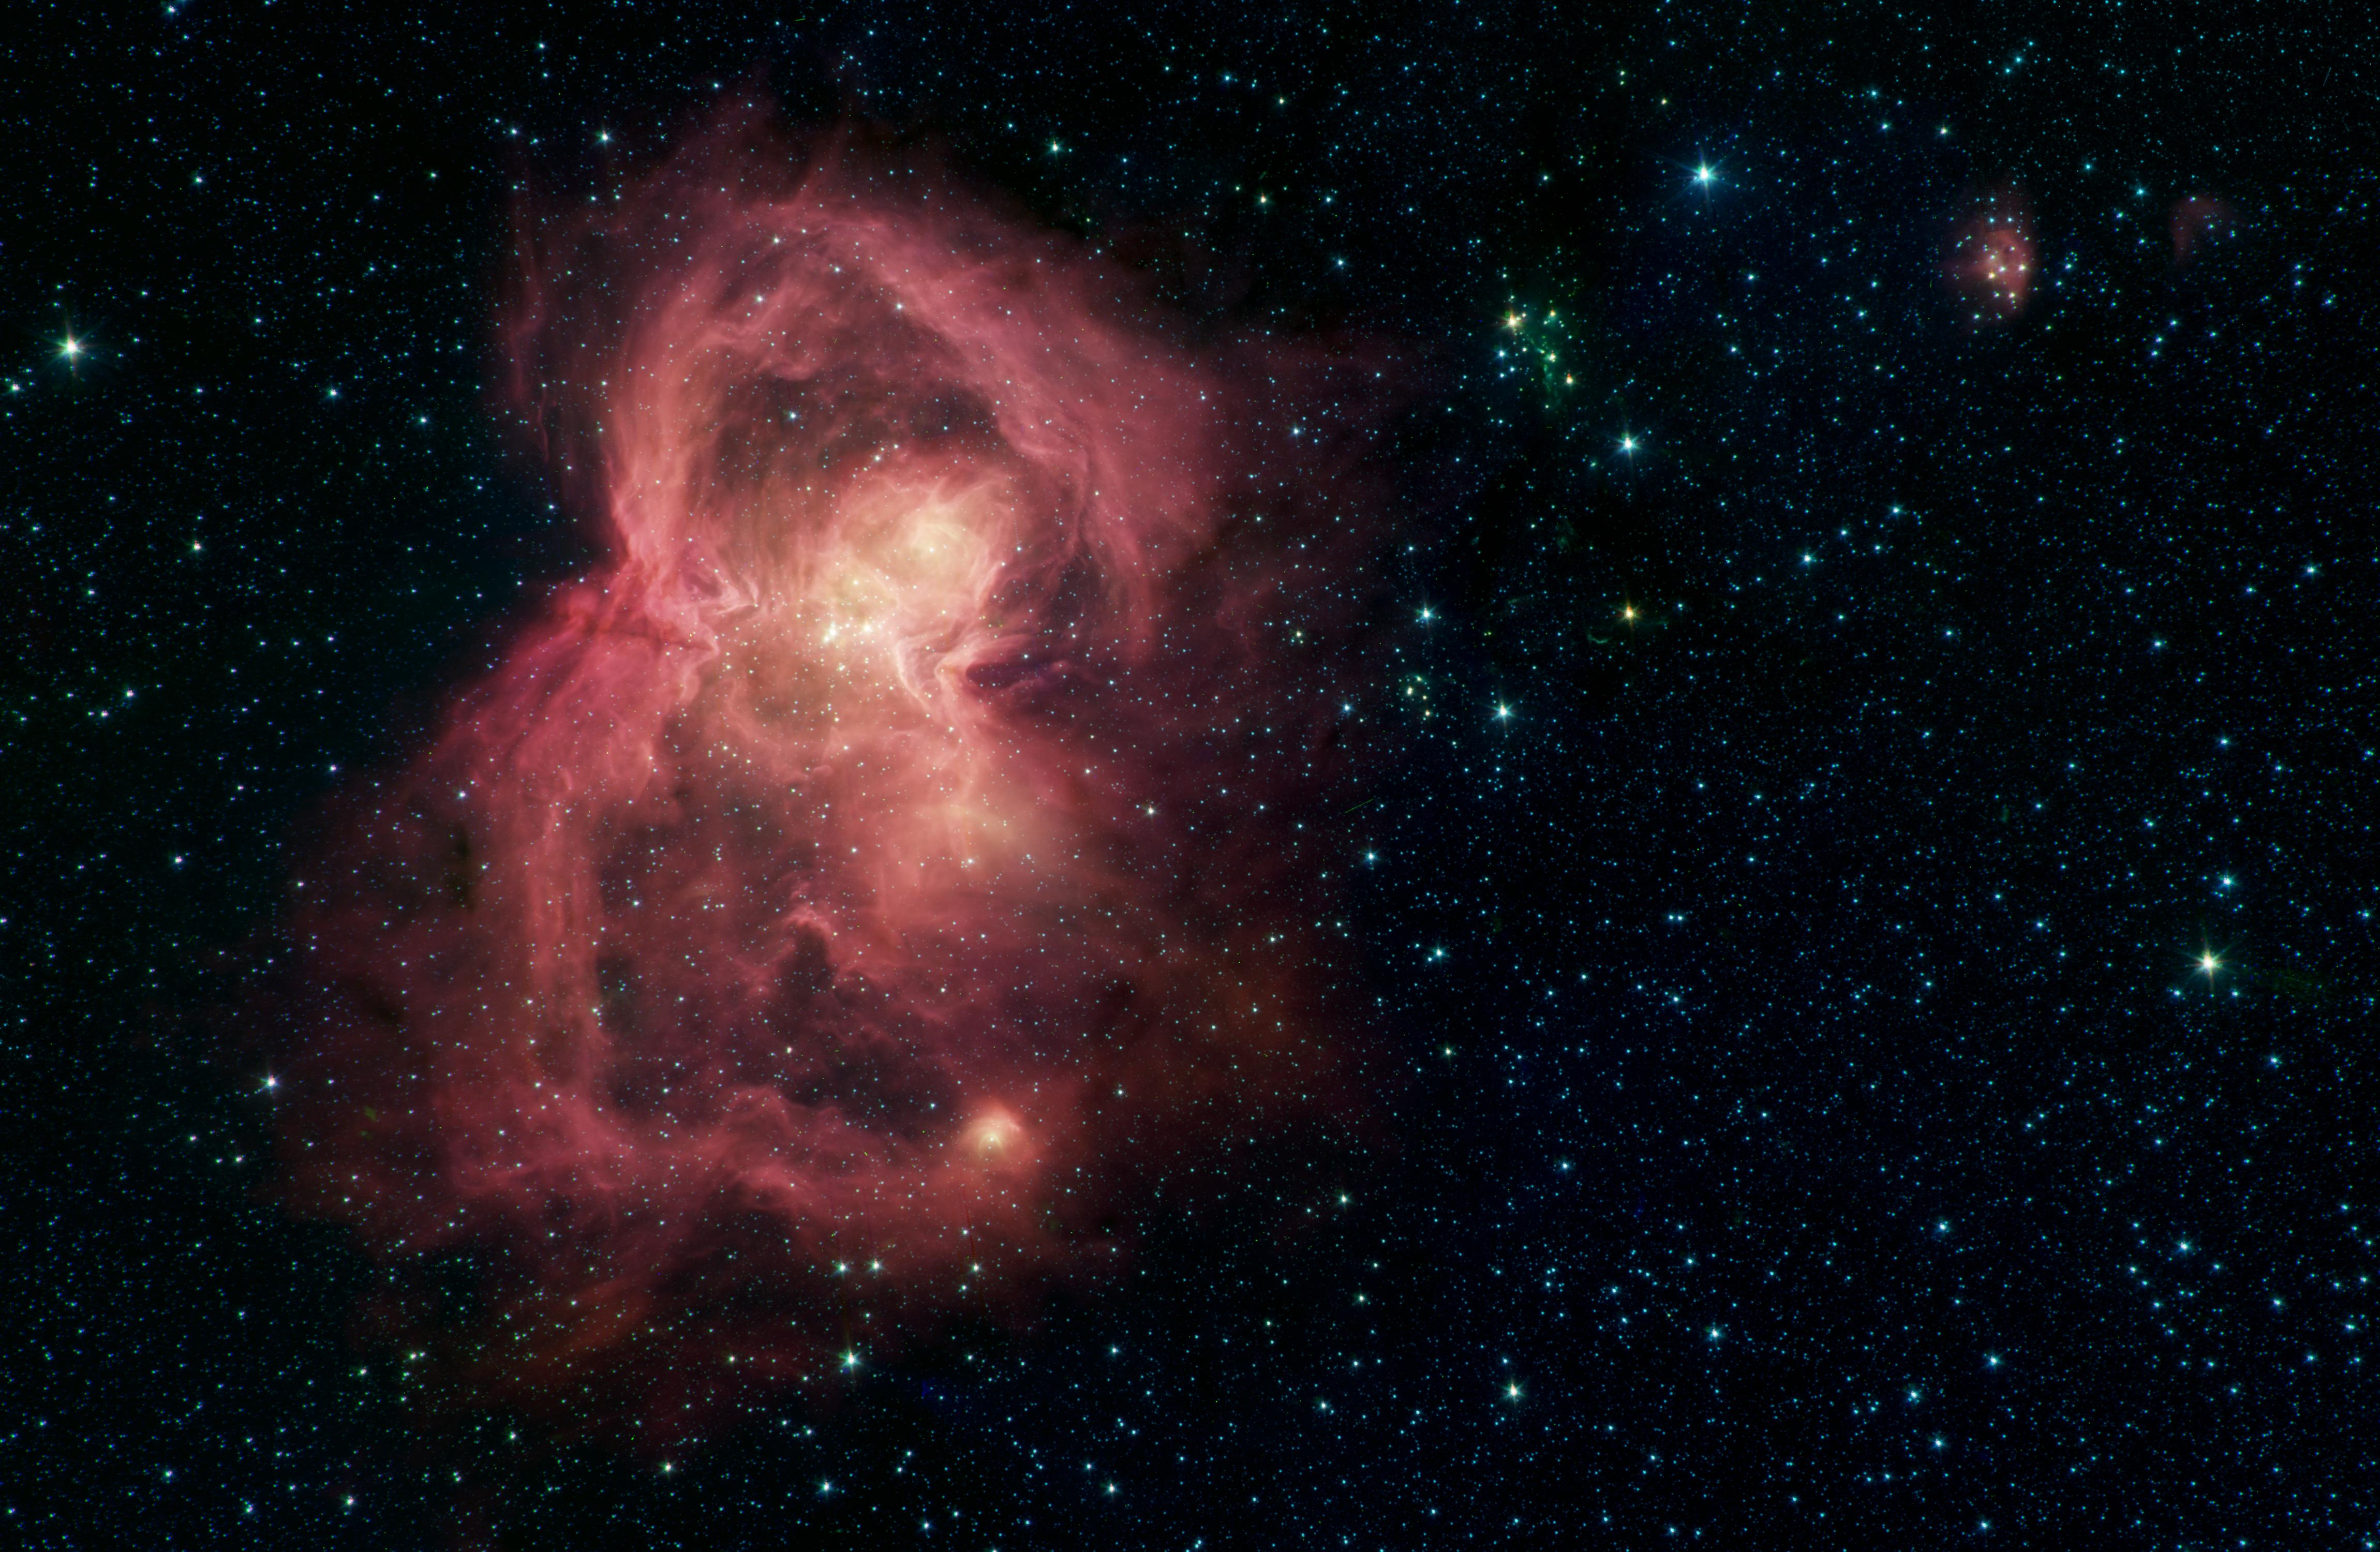 This image by NASAs Spitzer Space Telescope shows W40, a nebula, or a giant cloud of gas and dust.